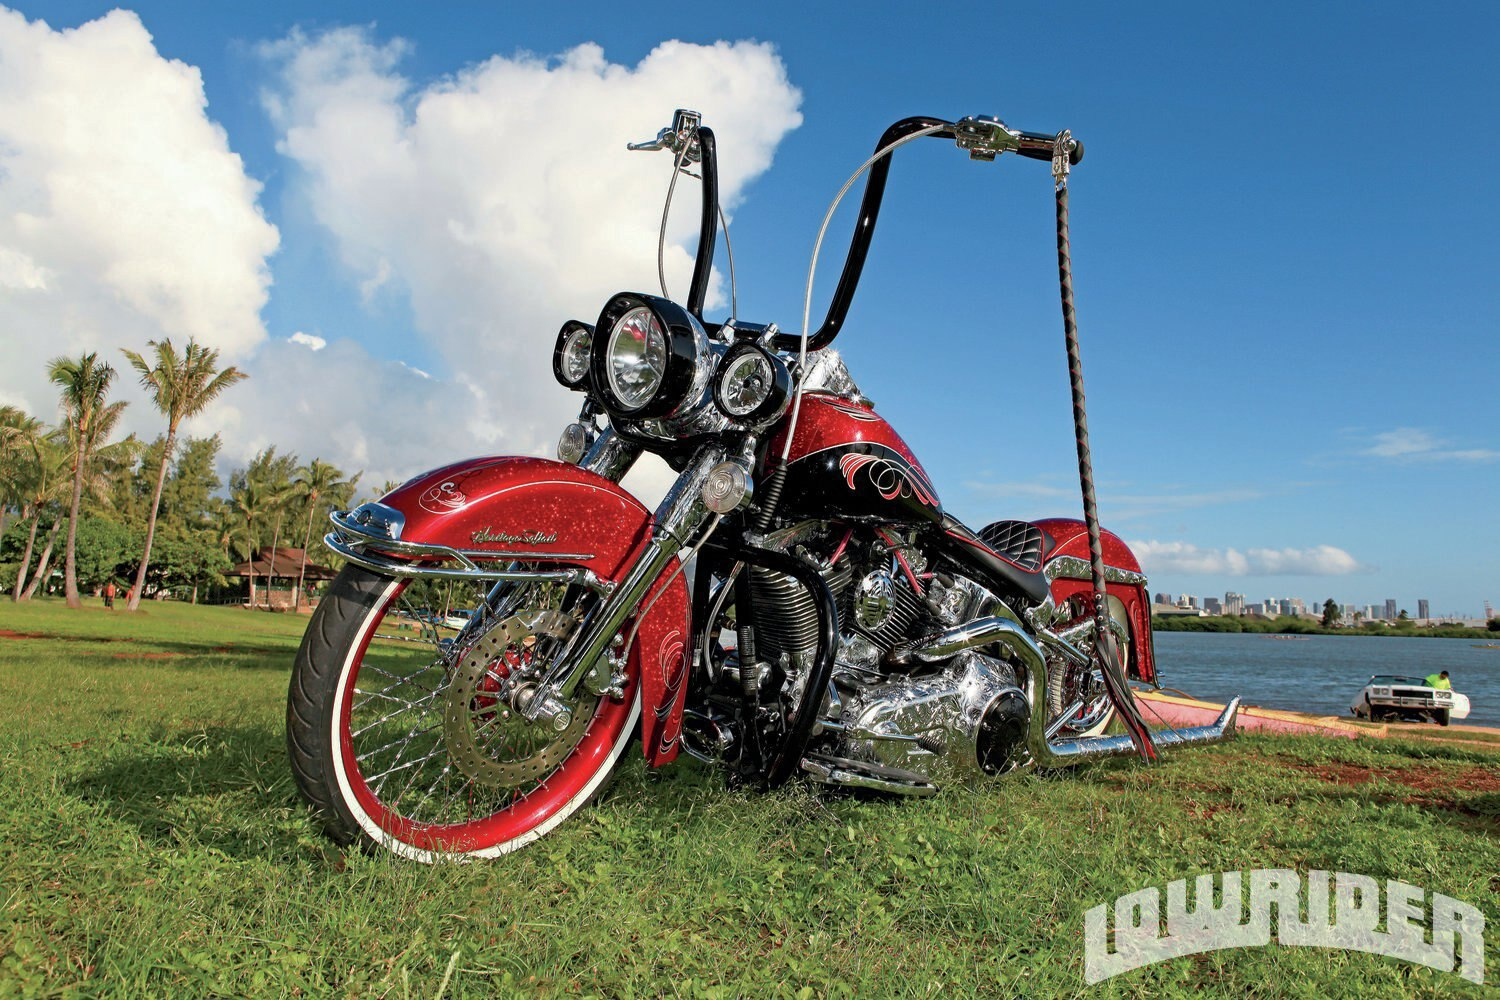 2007-harley-davidson-heritage-front-left-side-view1